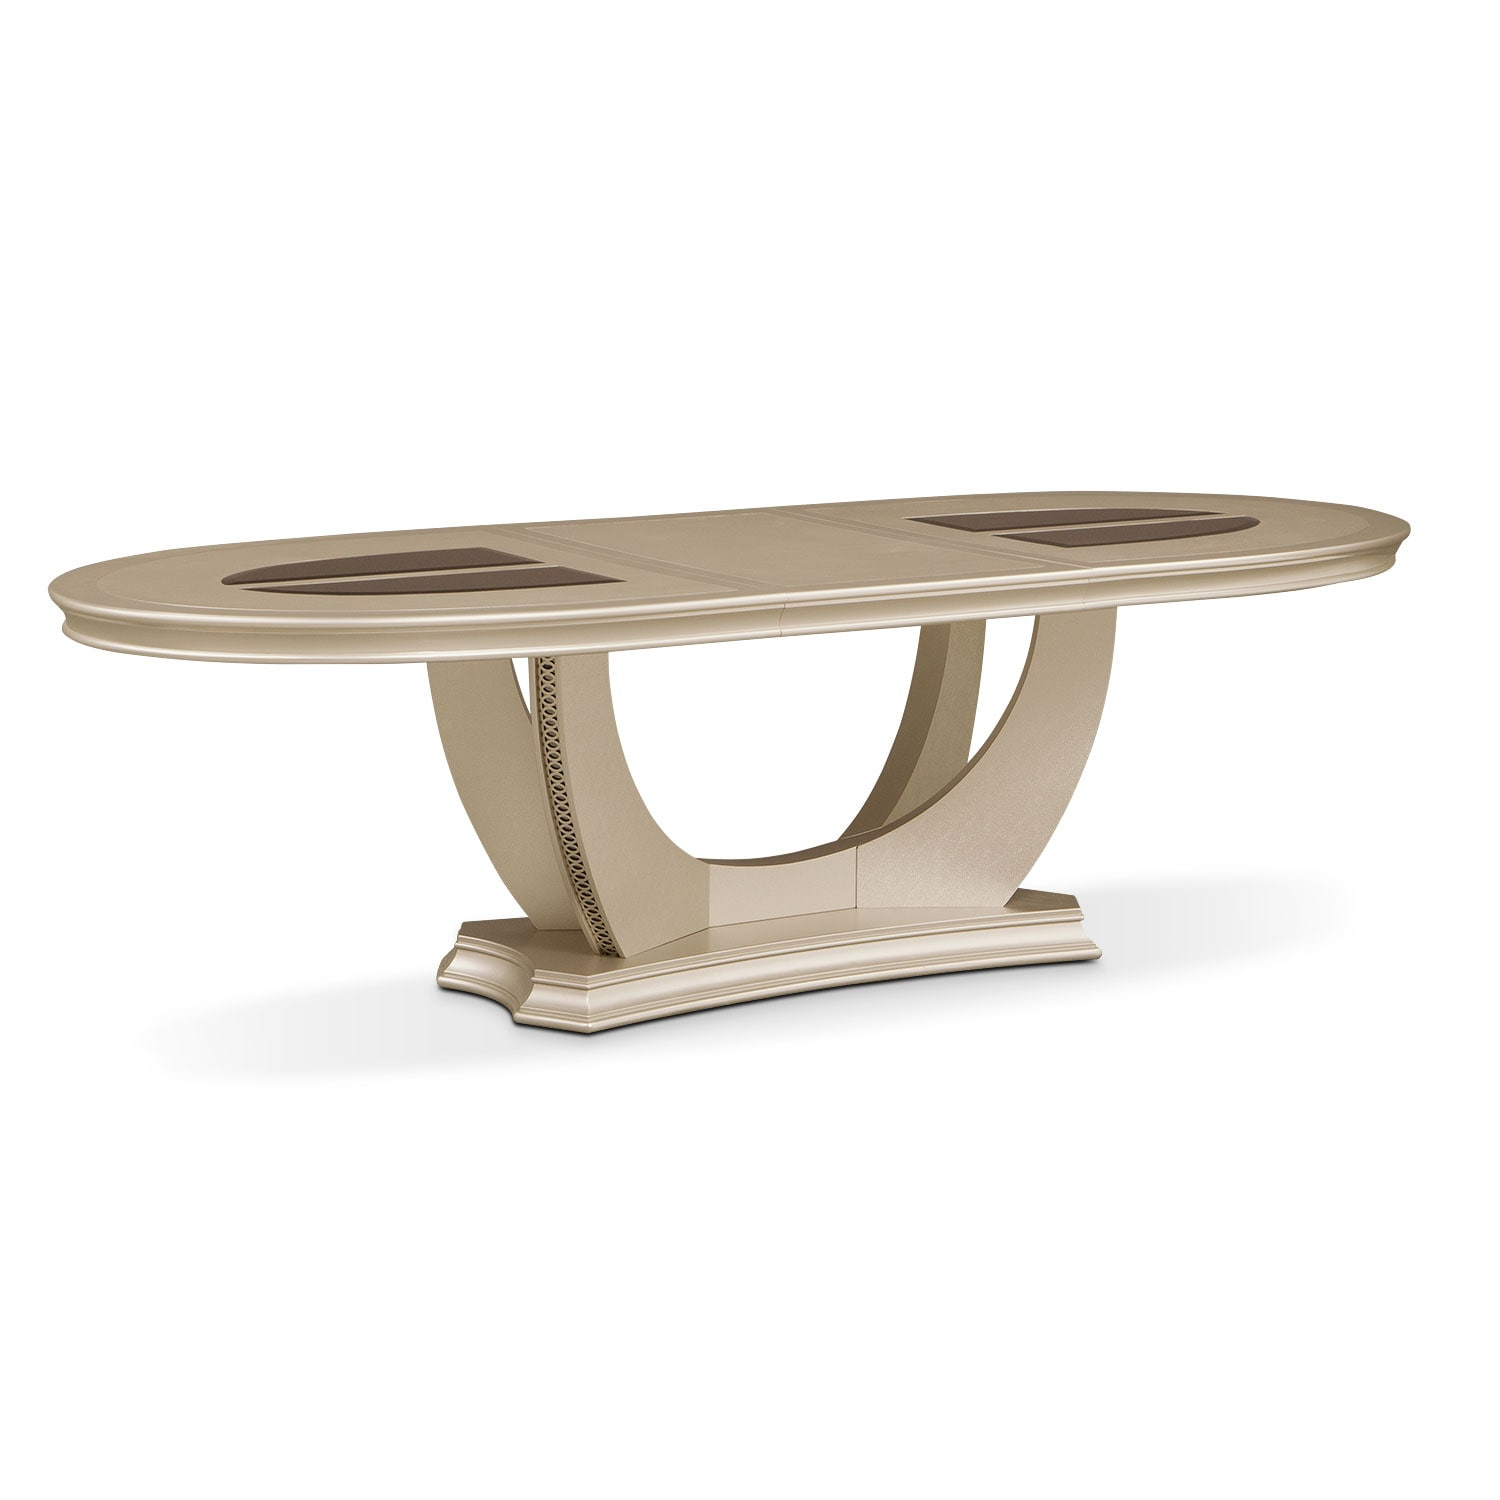 Dining Room Furniture - Allegro Oval Dining Table - Platinum